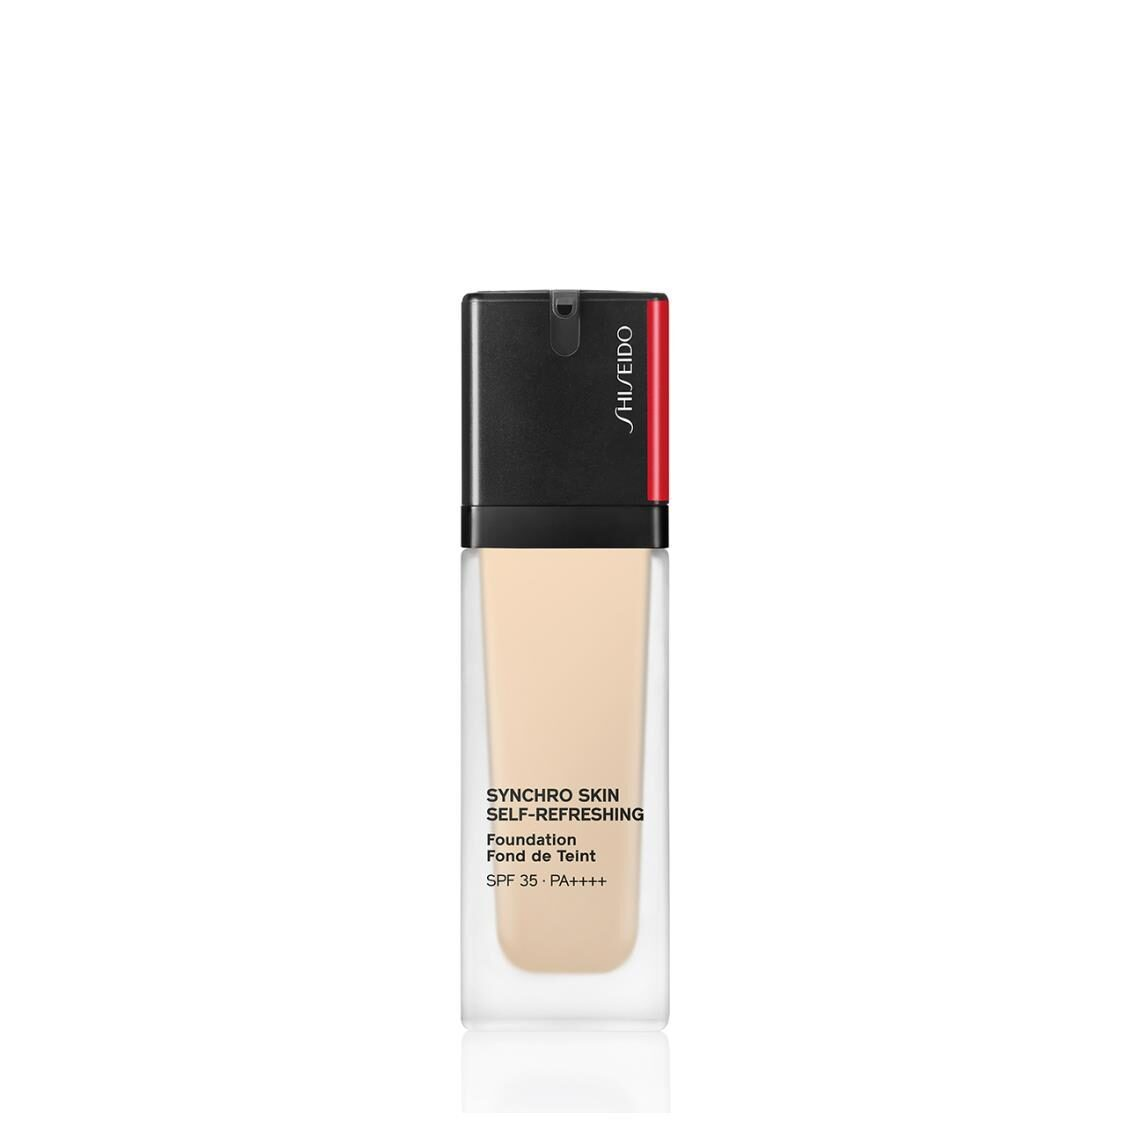 Shiseido Synchro Skin Self-Refreshing Foundation 120 Ivory